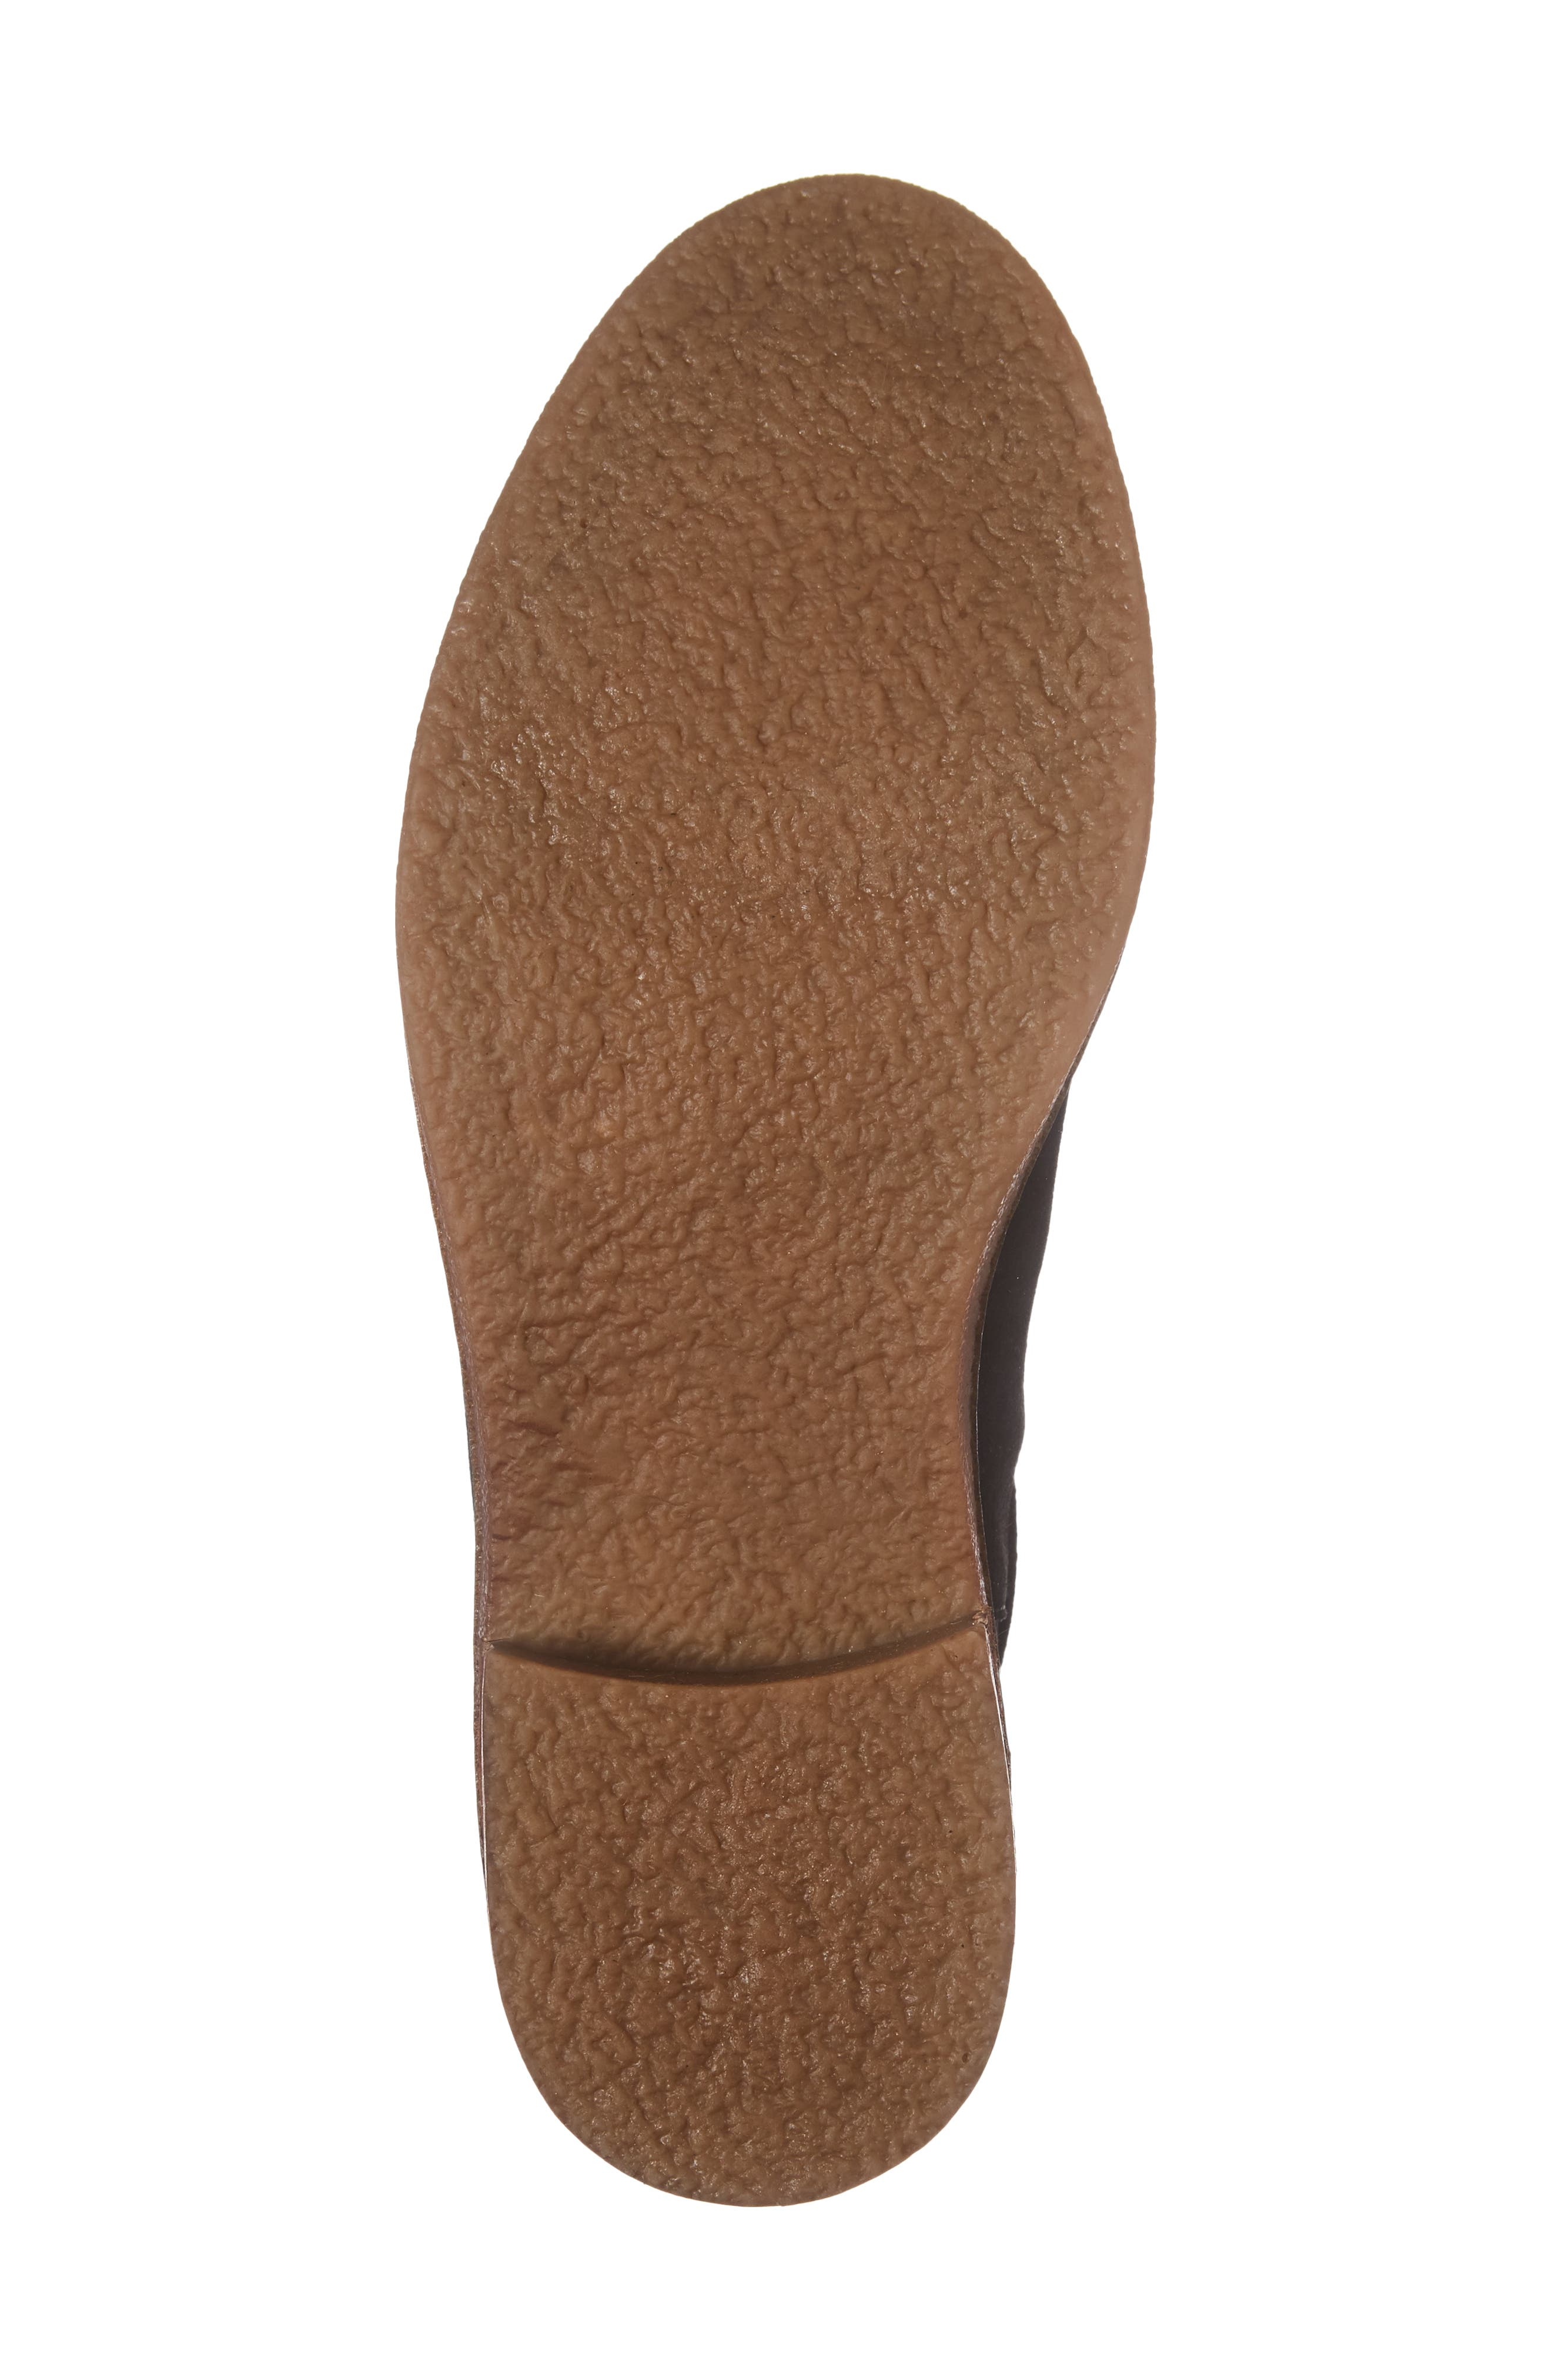 Clay Bootie,                             Alternate thumbnail 6, color,                             001